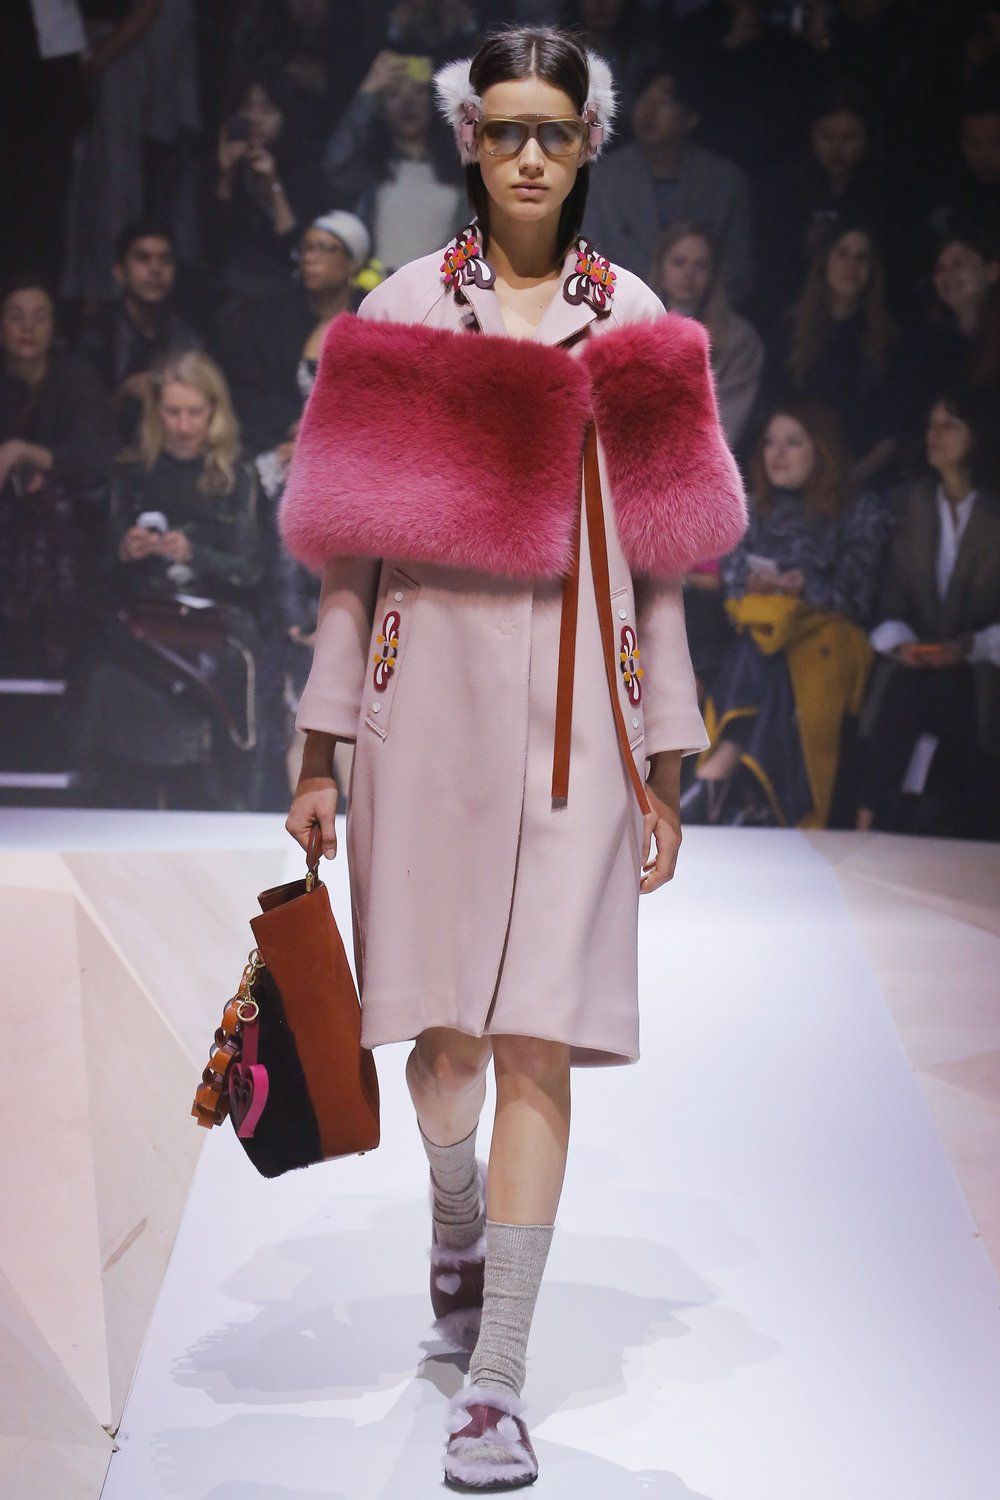 Anya Hindmarch A/W 2017. Photography: Unkown, via Vogue.co.uk